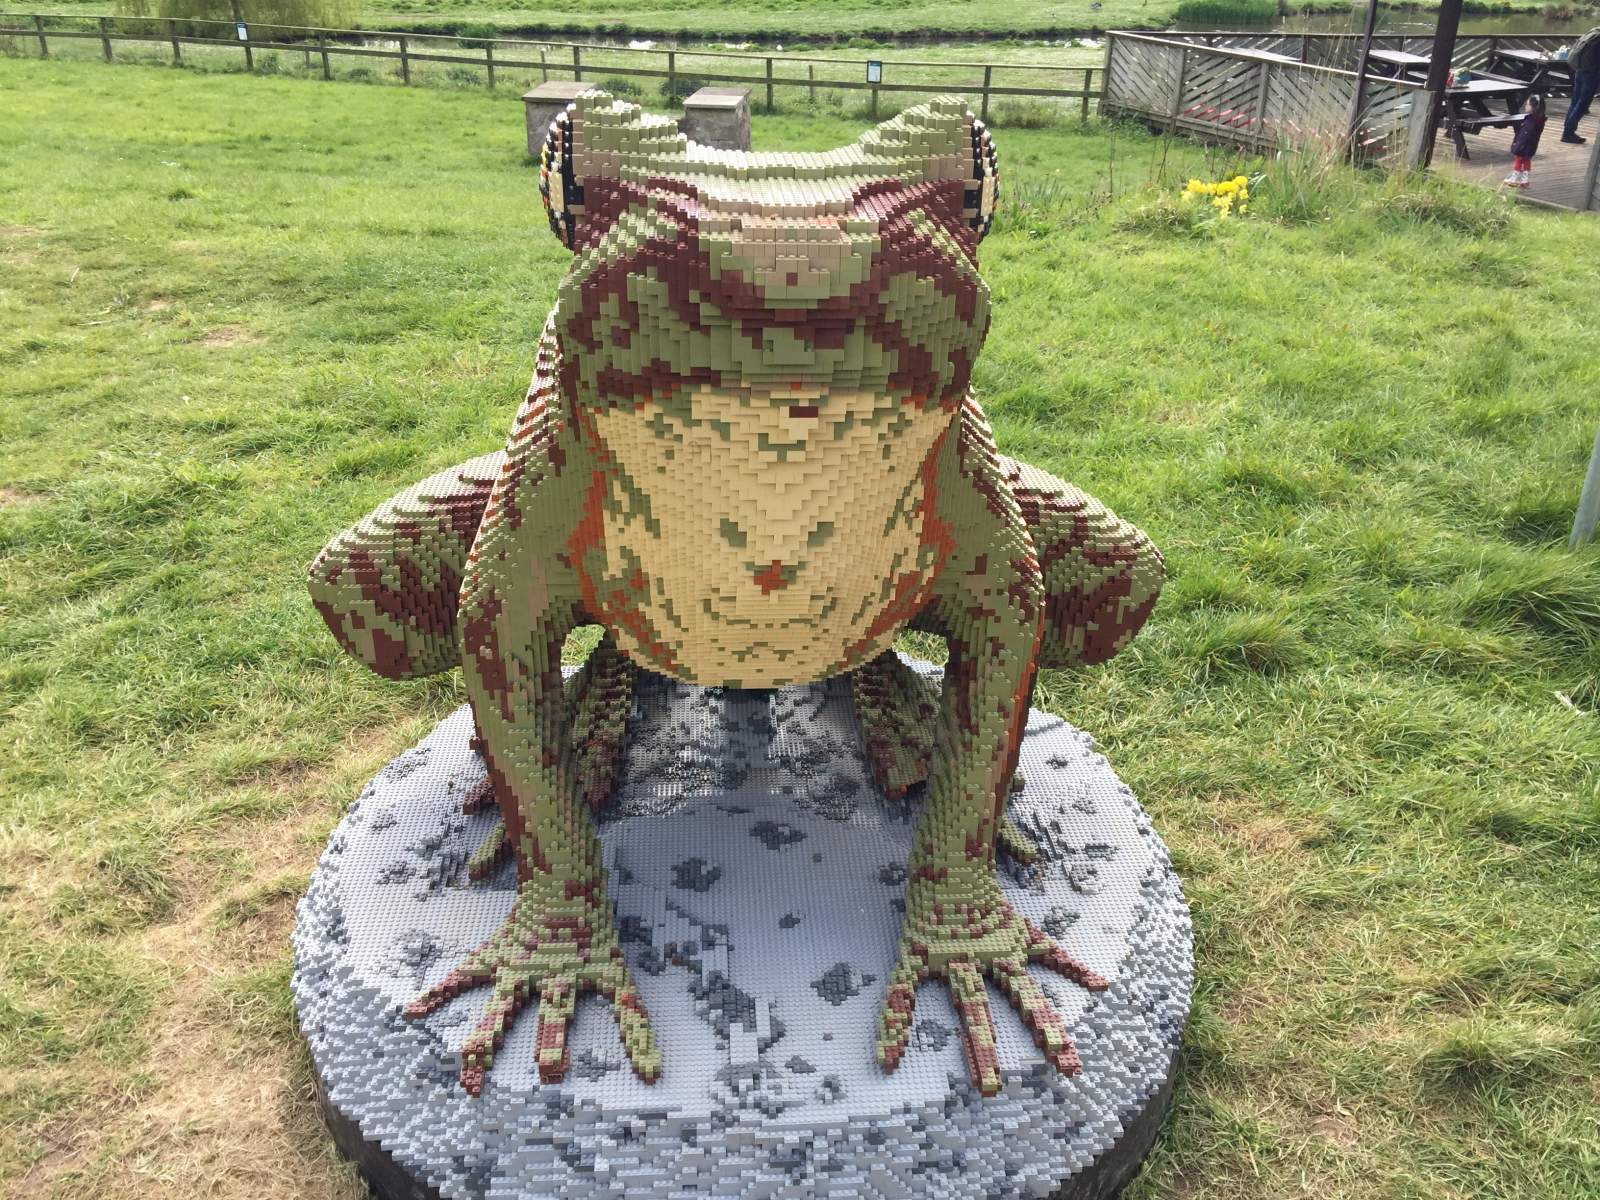 LEGO trail at Wildfowl and Wetland Trust